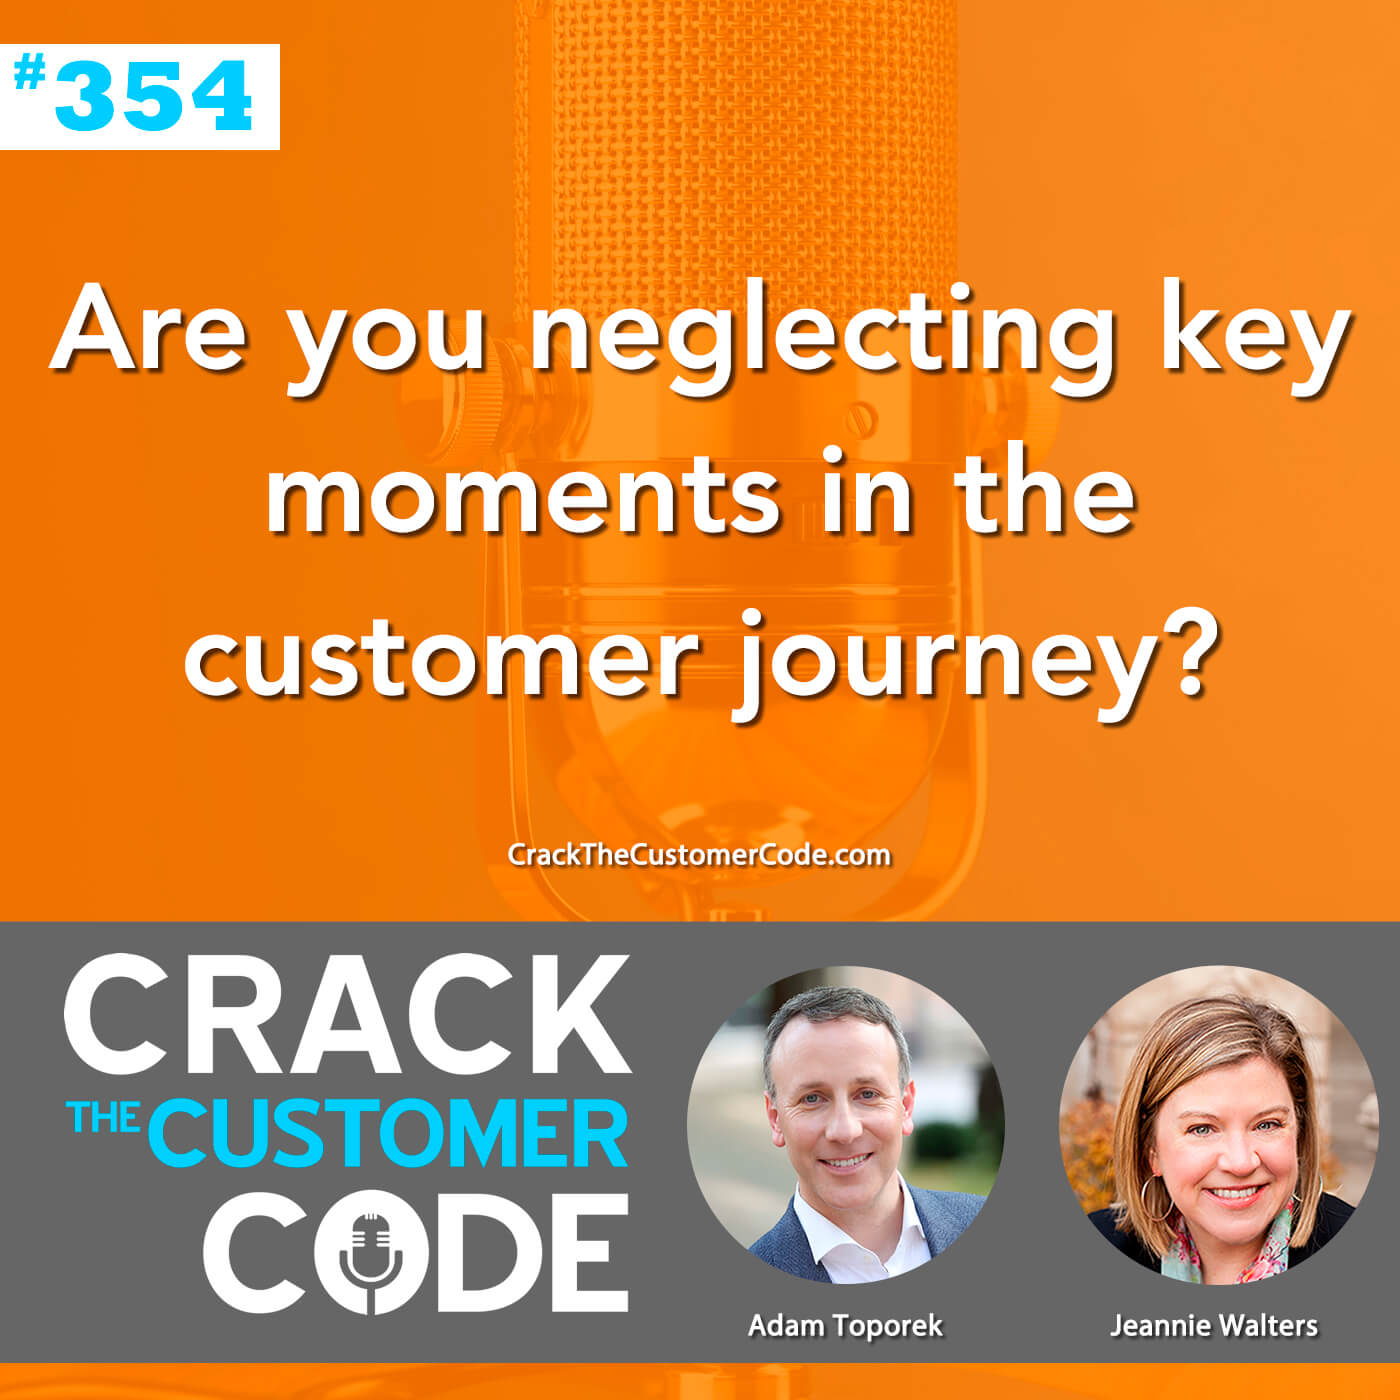 354: Are you neglecting key moments in the customer journey?